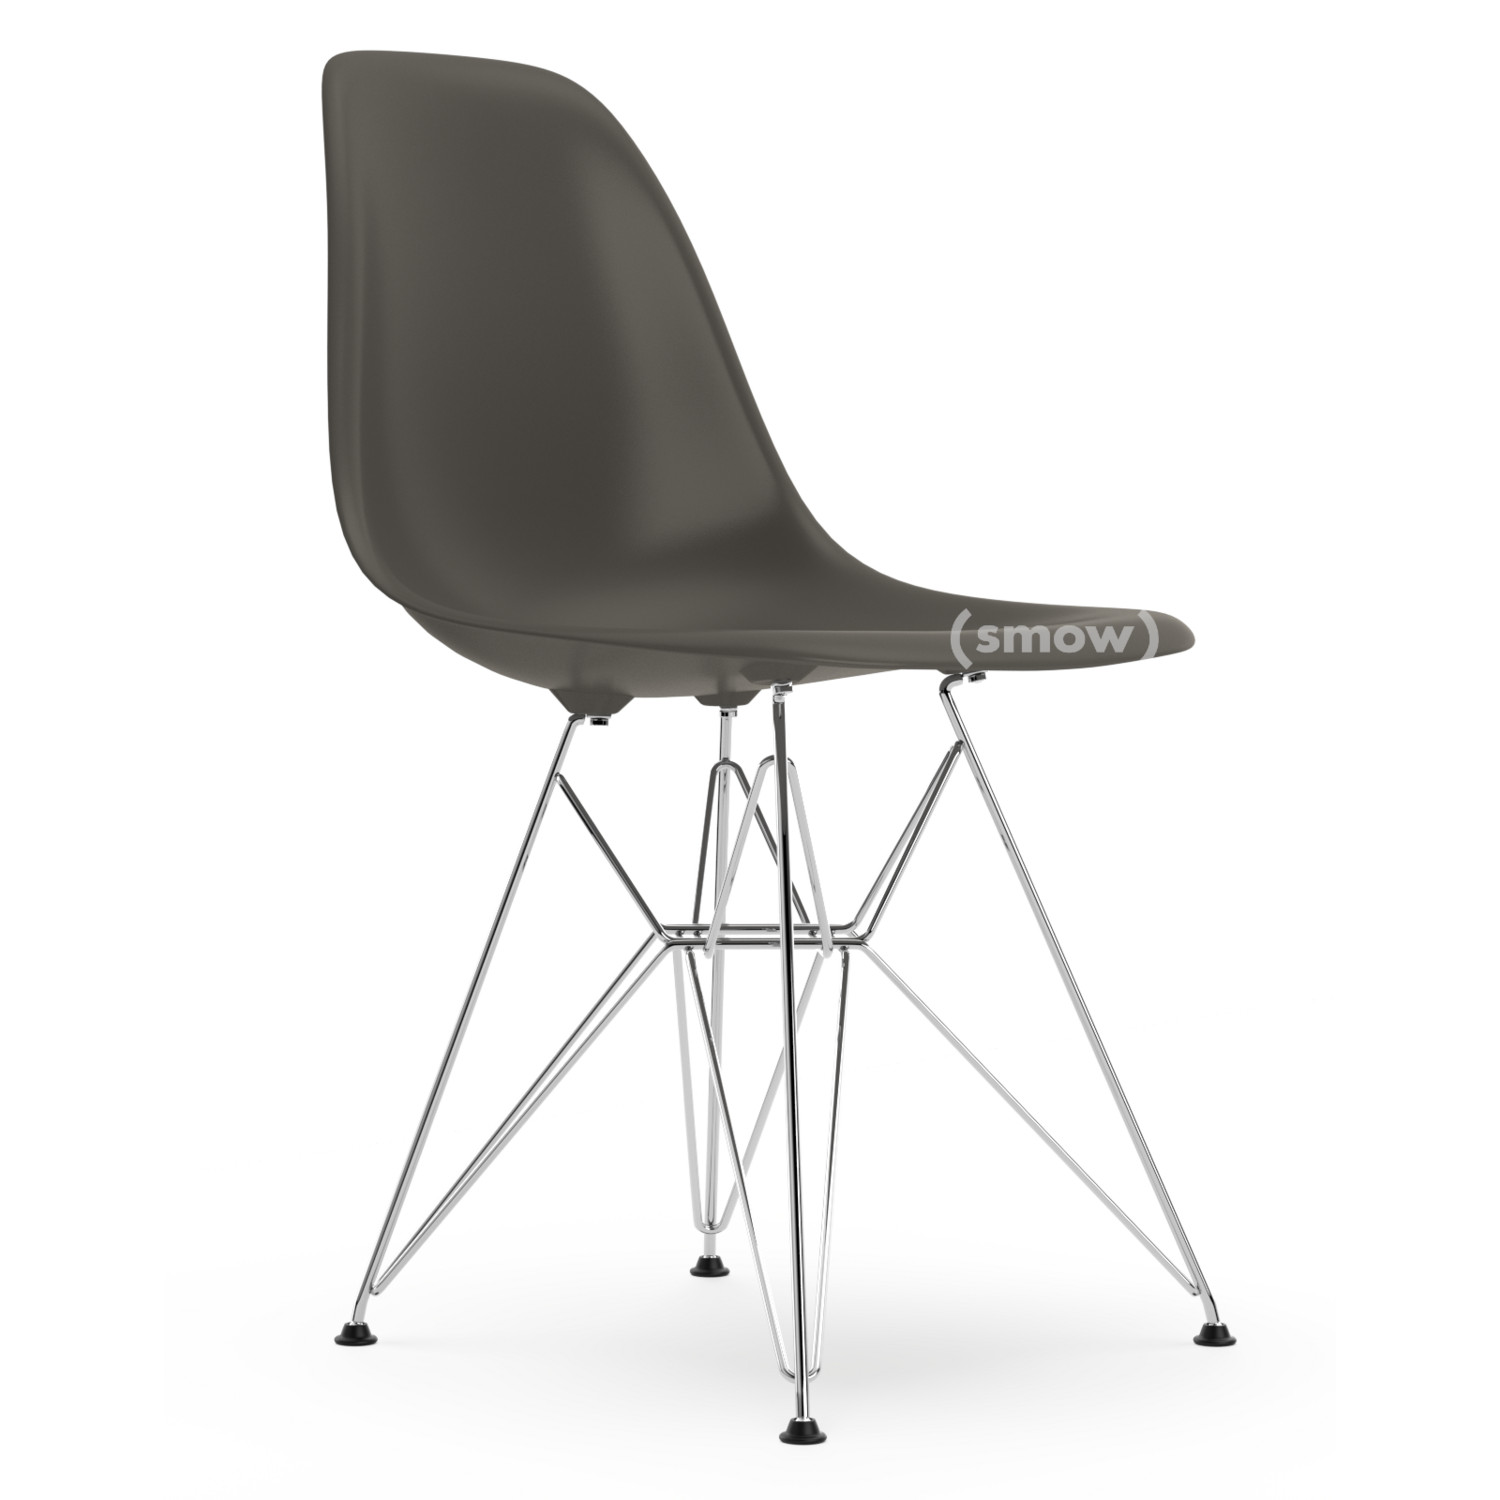 vitra eames plastic side chair dsr basalt grey without. Black Bedroom Furniture Sets. Home Design Ideas